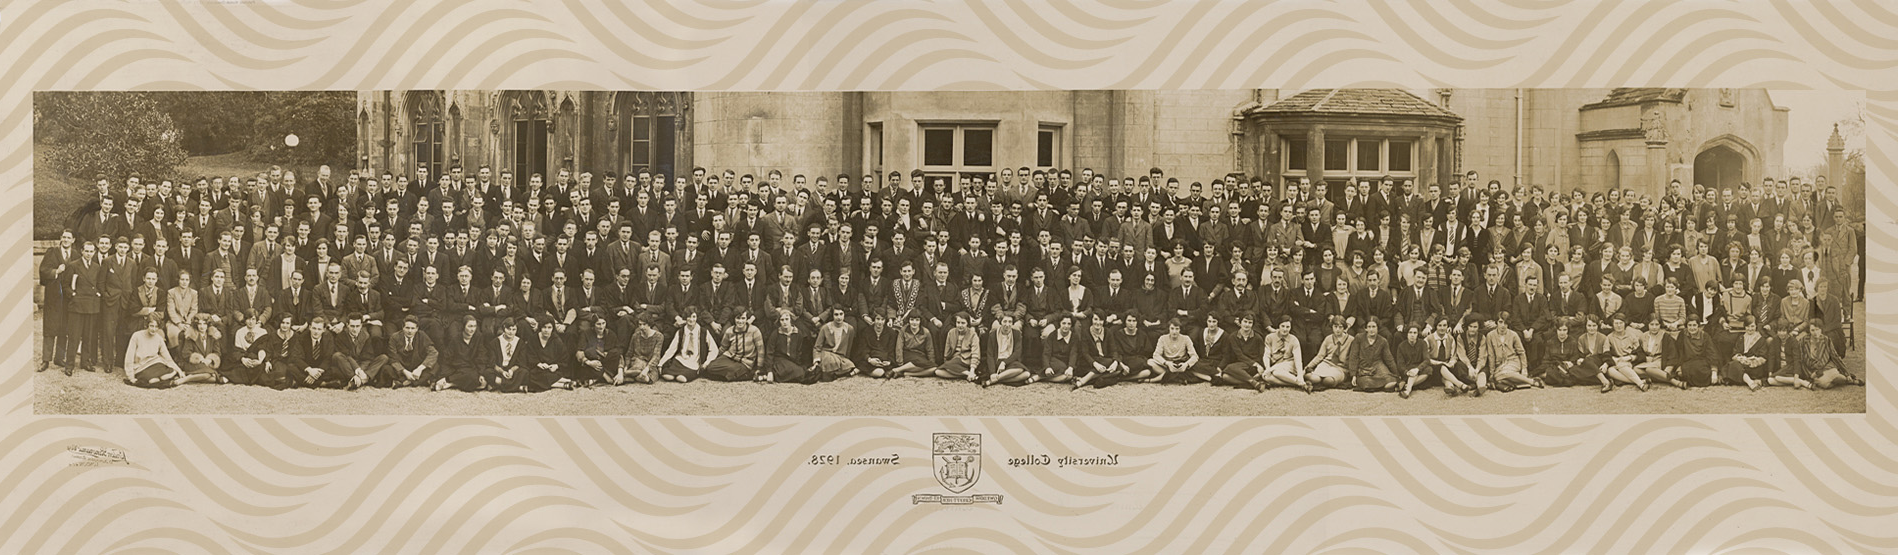 university class photo from 1926 in front of the abbey